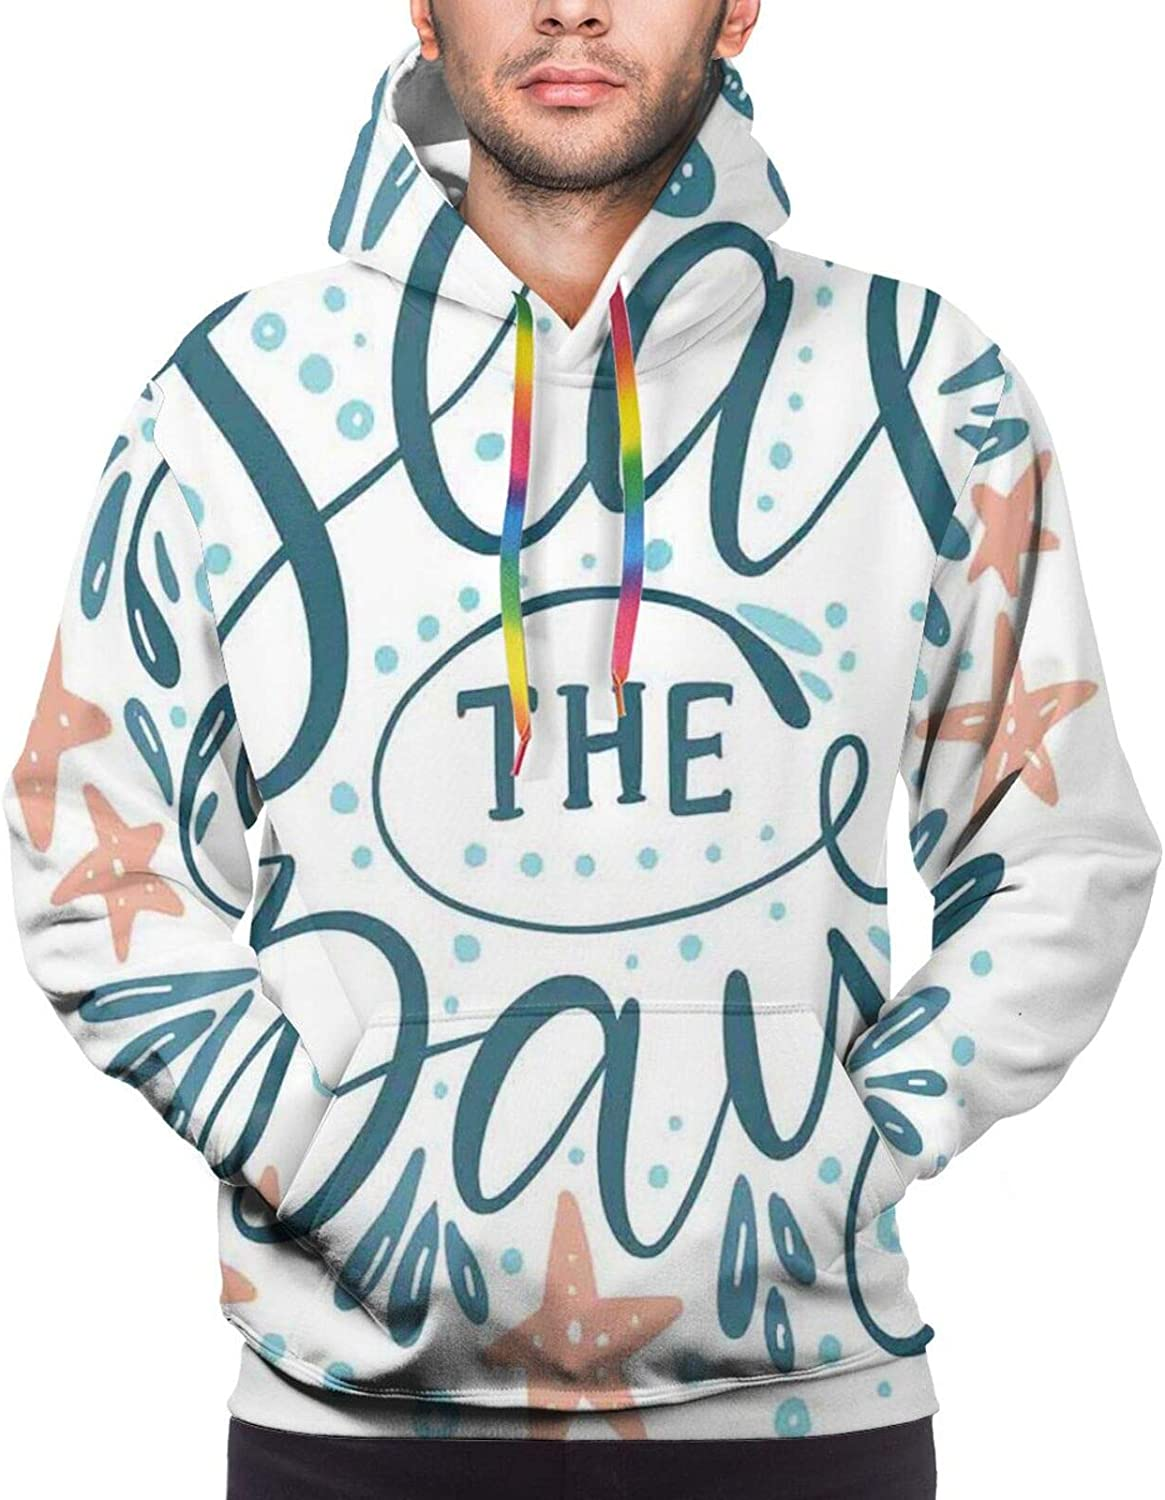 Men's Hoodies Sweatshirts,Searching for Love Girl Holding A Navigation Device Hand Drawn Image Print